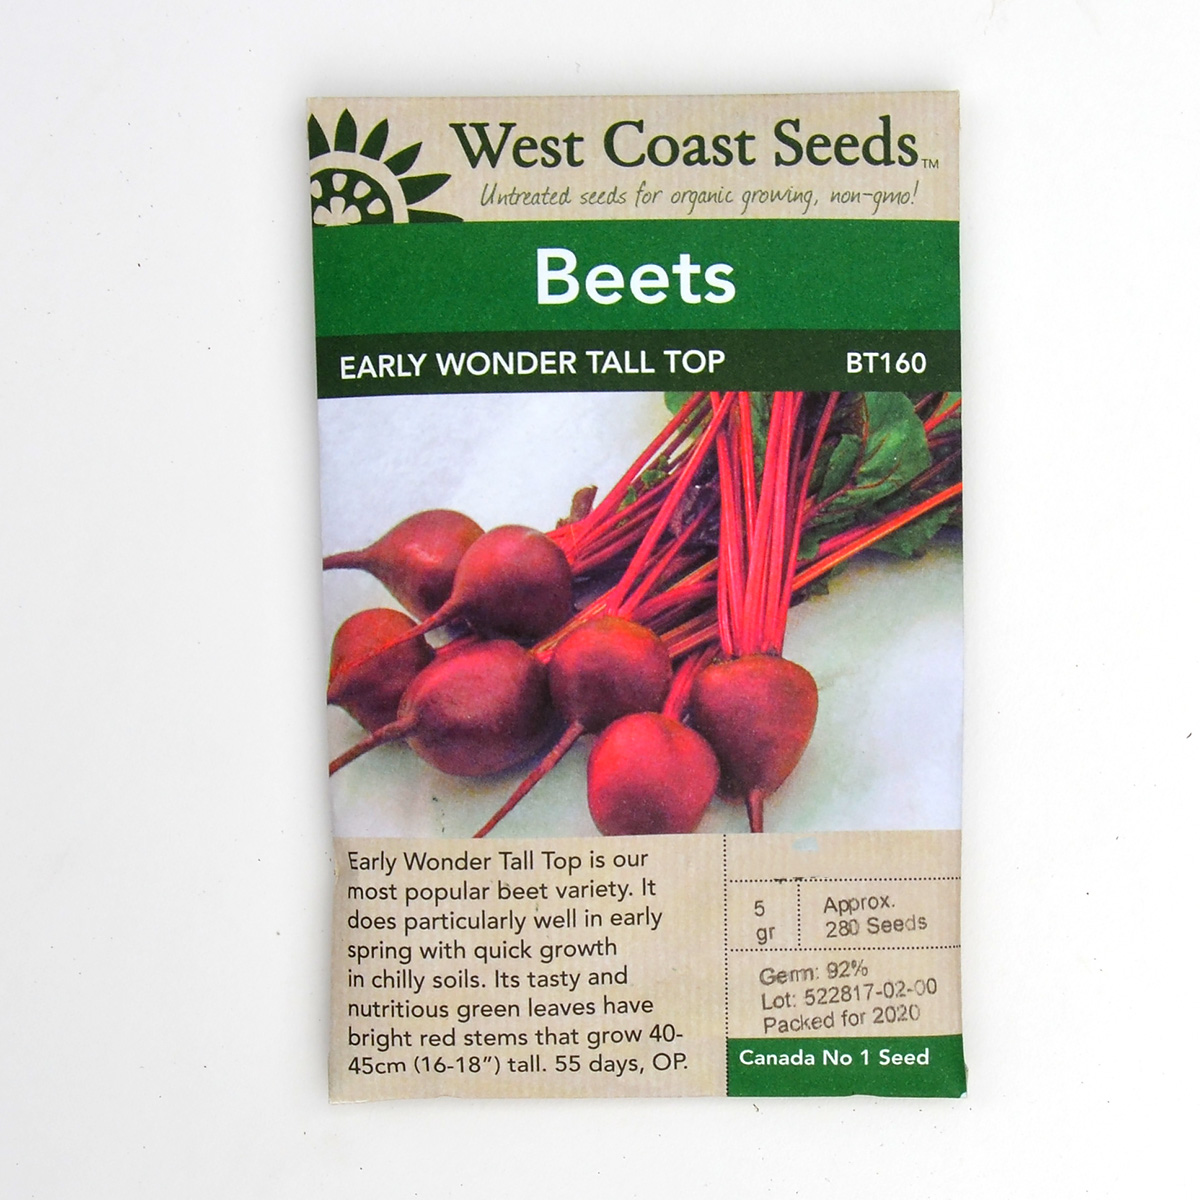 Beets Early Wonder Tall Top Seeds BT160